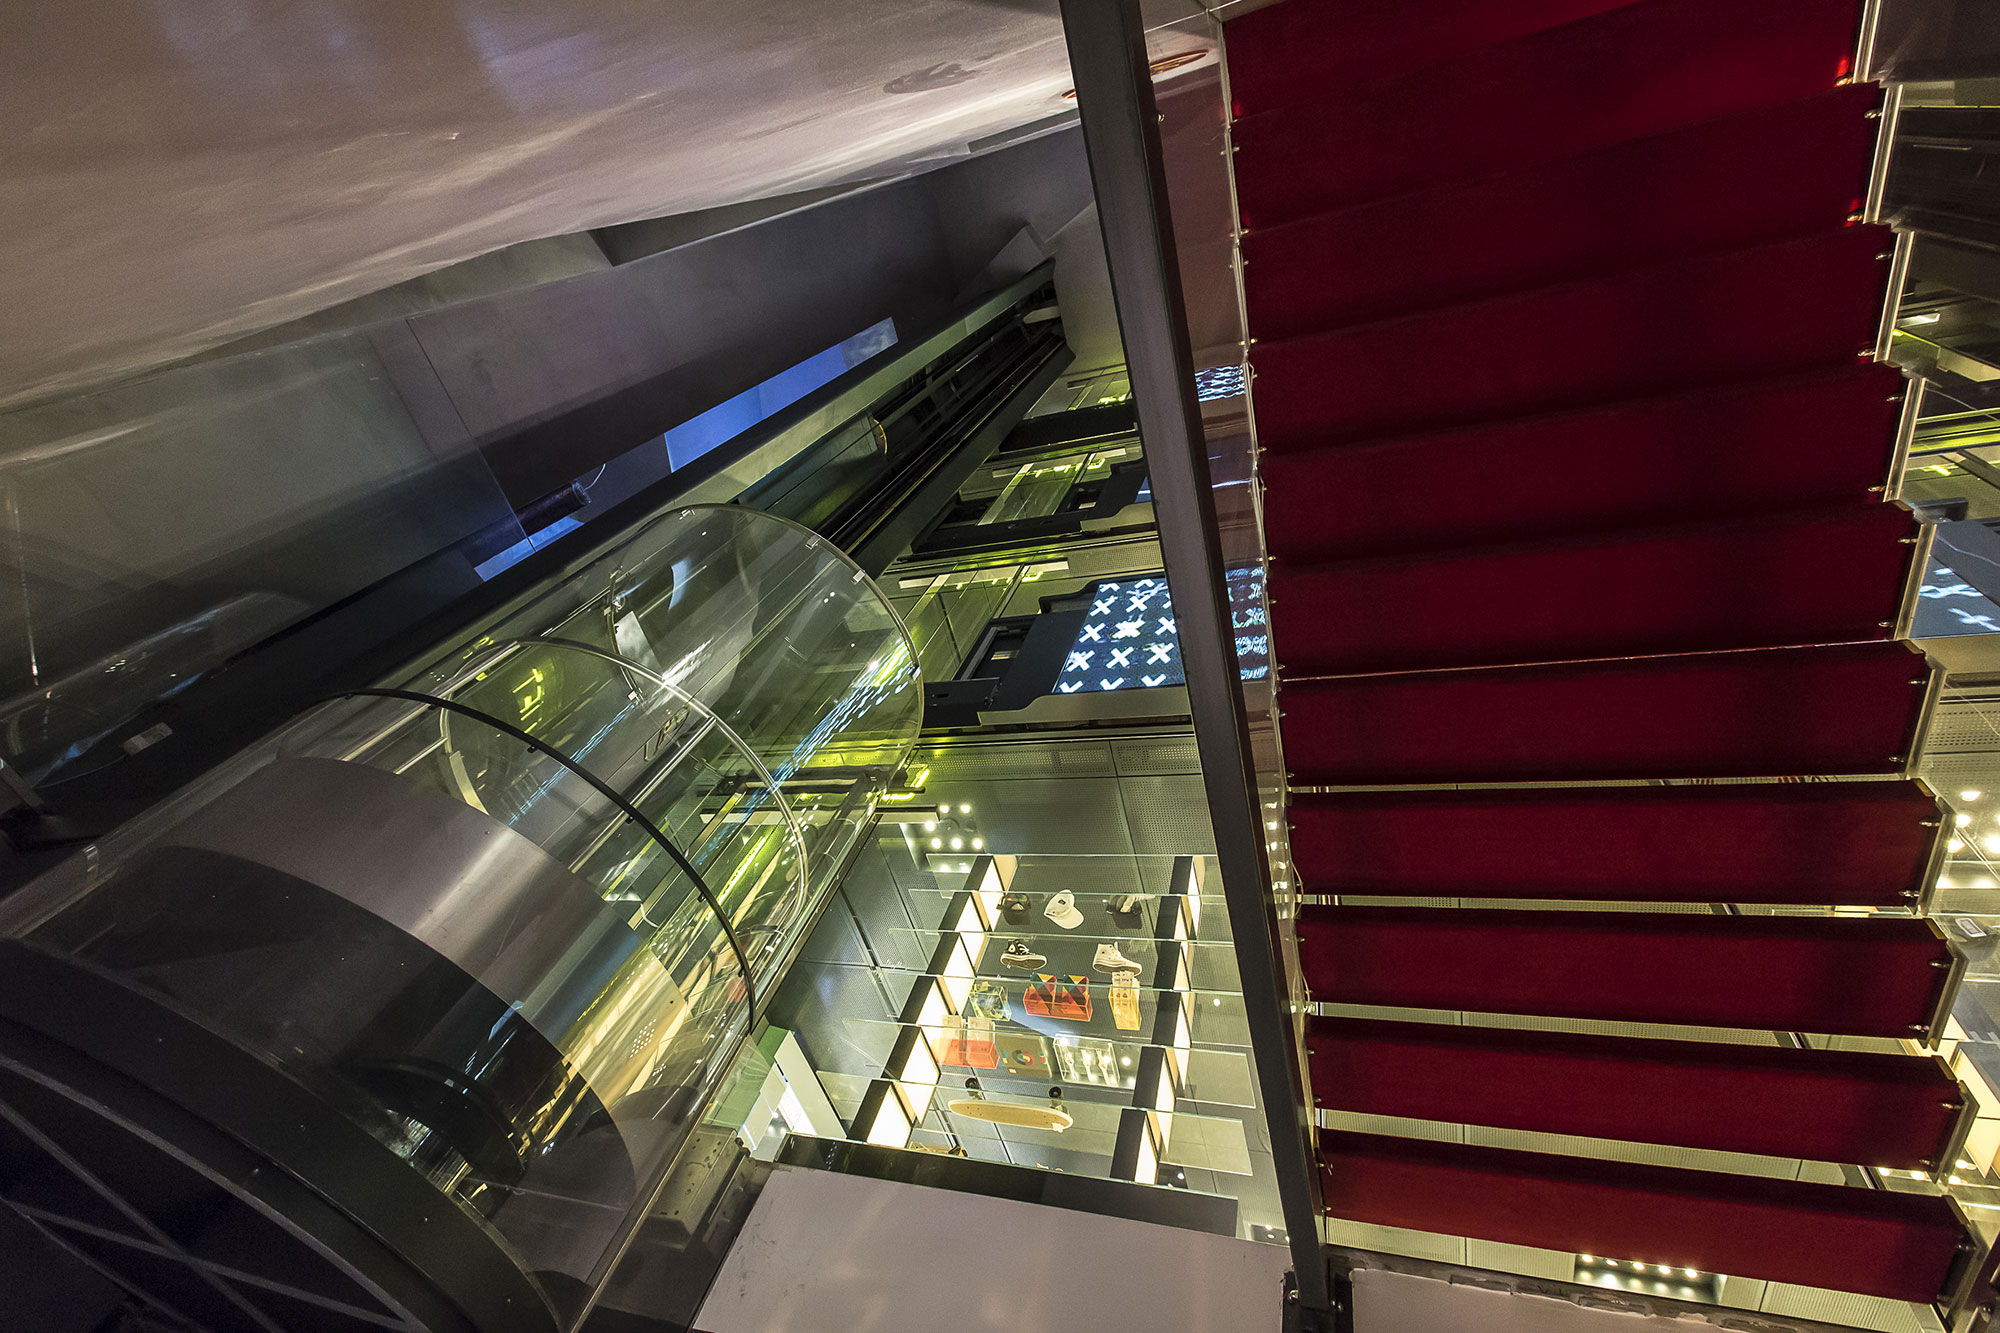 Lifts for the shopping center Excelsior Milano